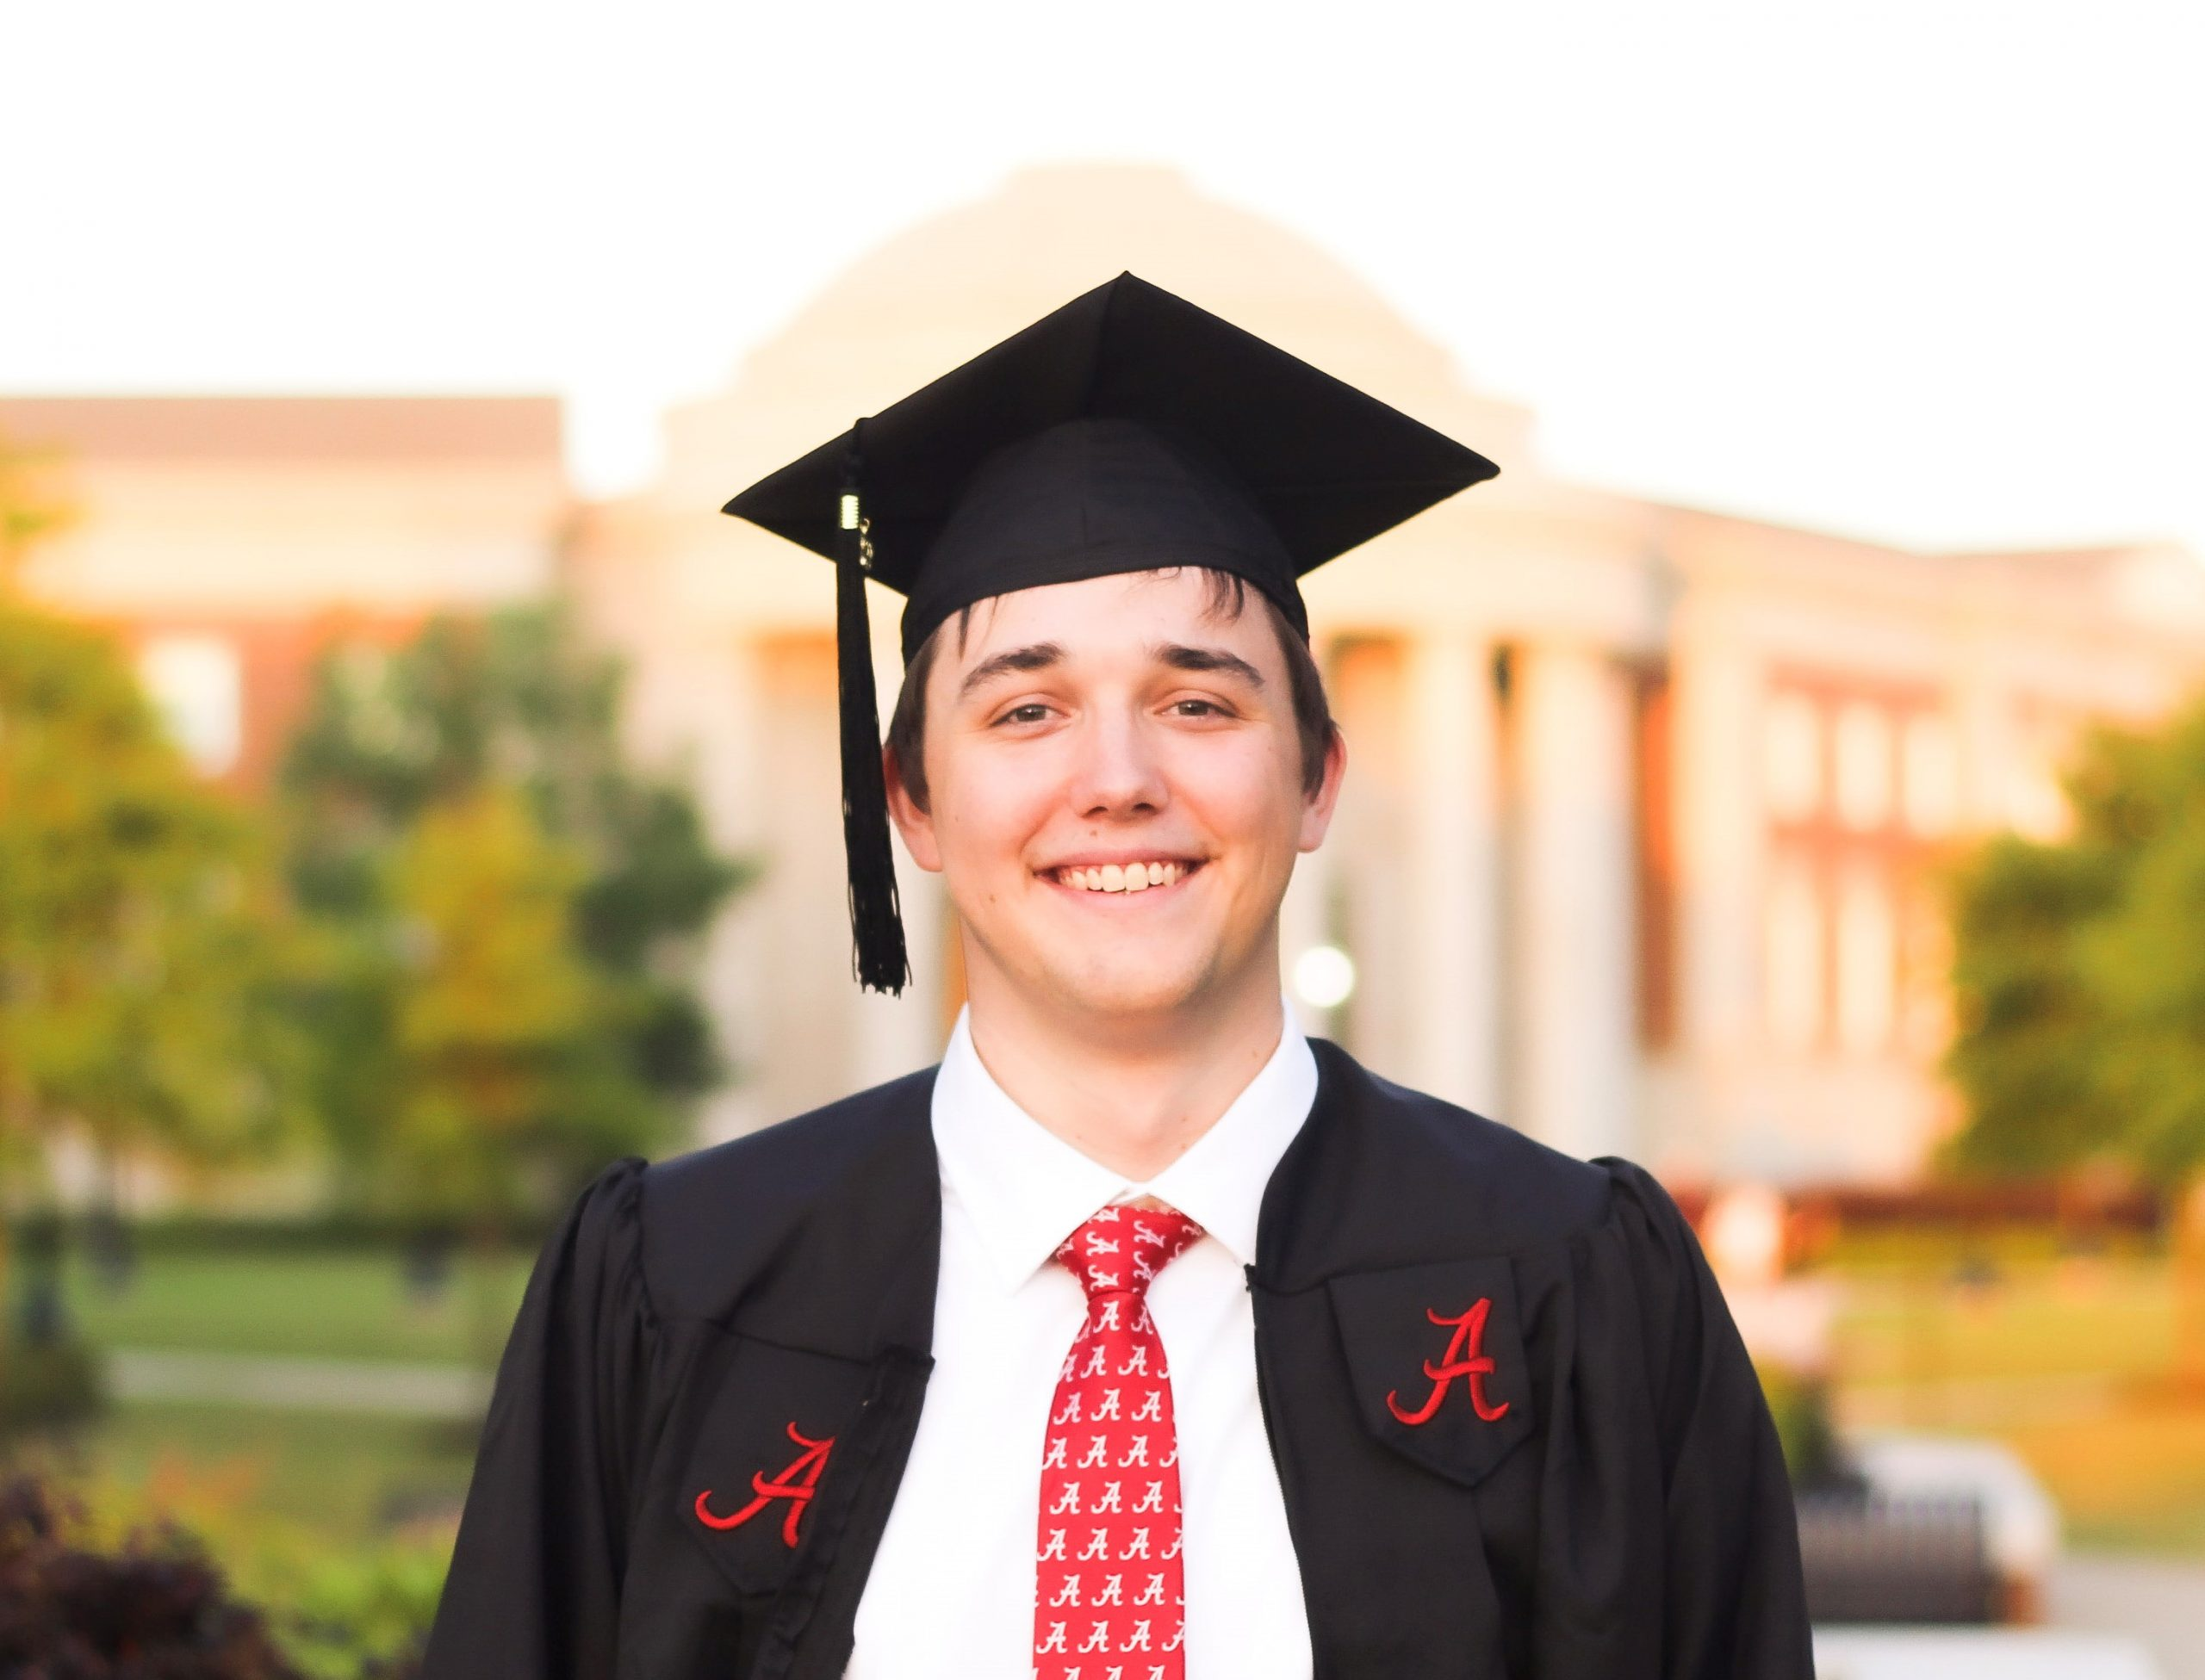 Jonathan Blake from Electrical and Computer Engineering